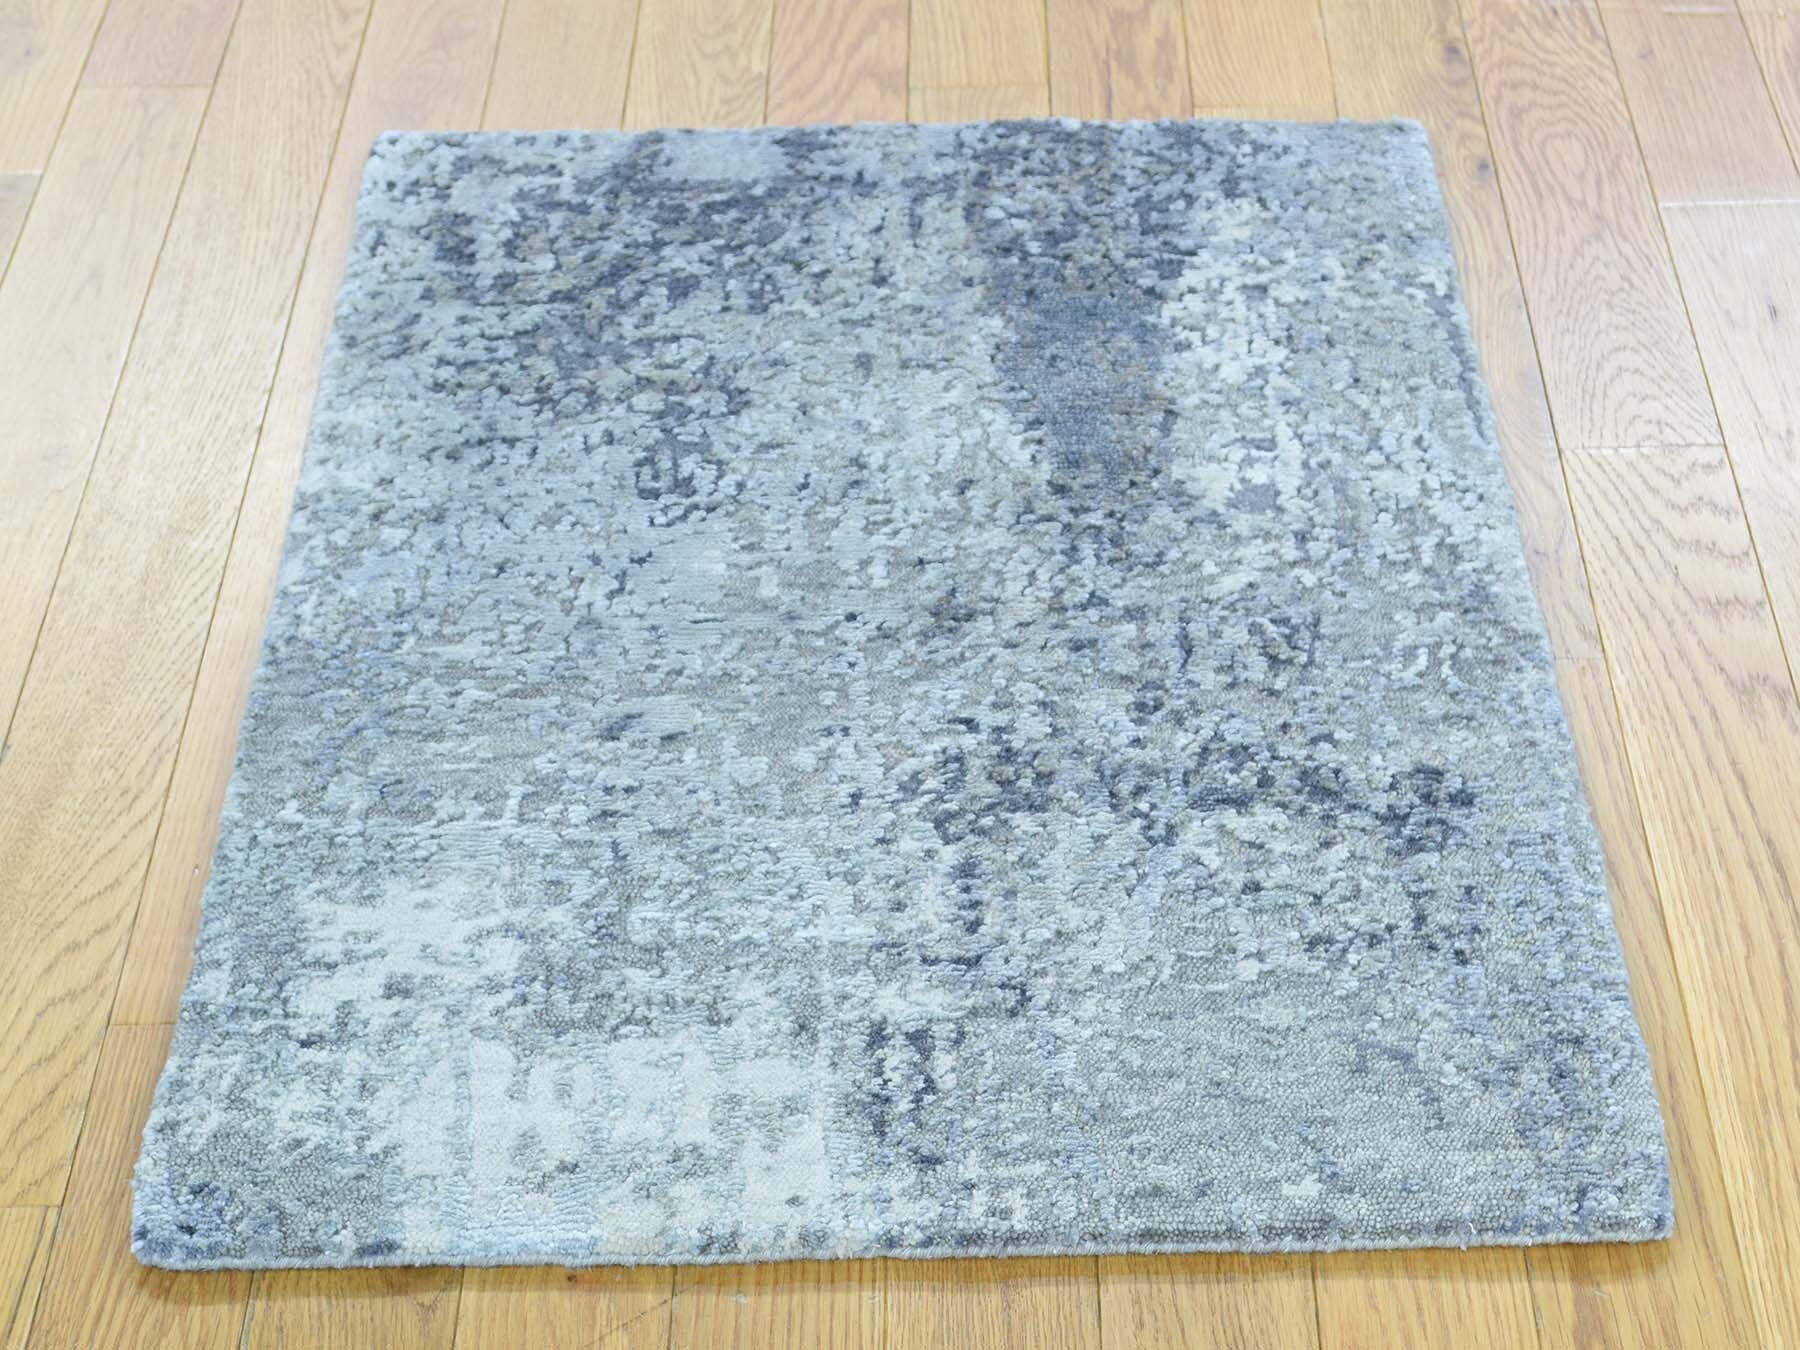 One-of-a-Kind Caywood Abstract Design Handwoven Wool/Silk Area Rug